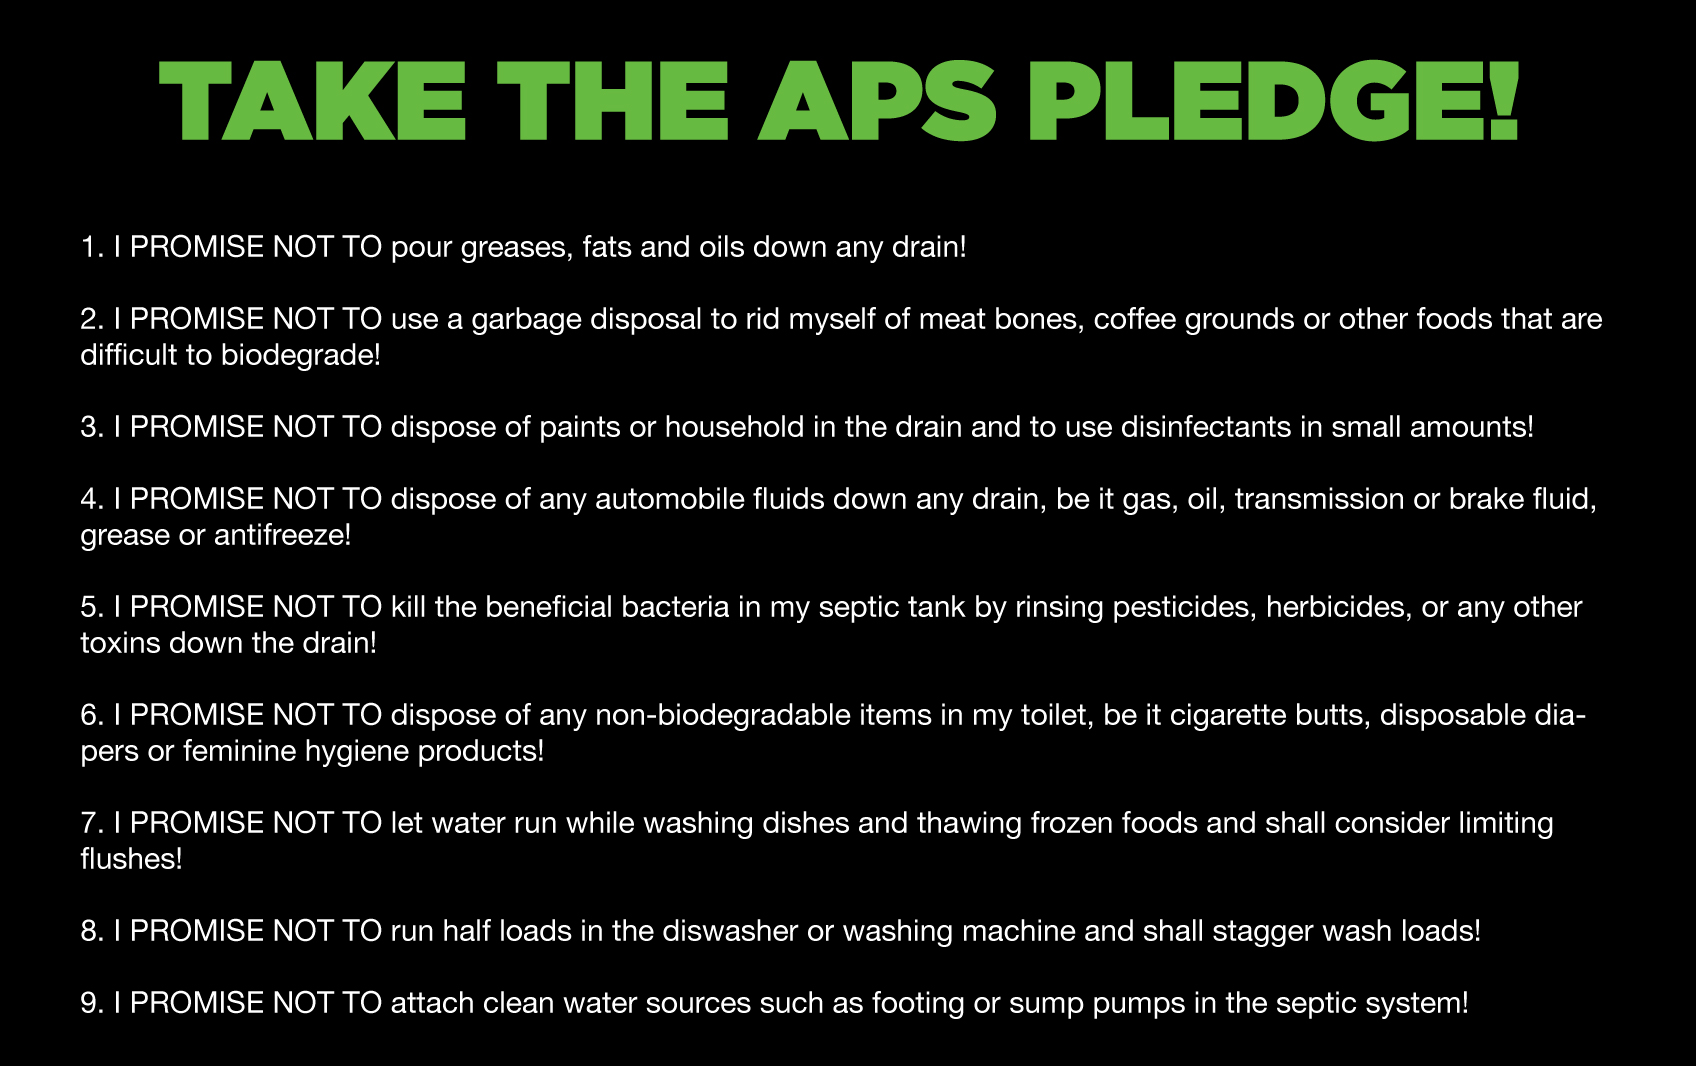 pledge_graphic